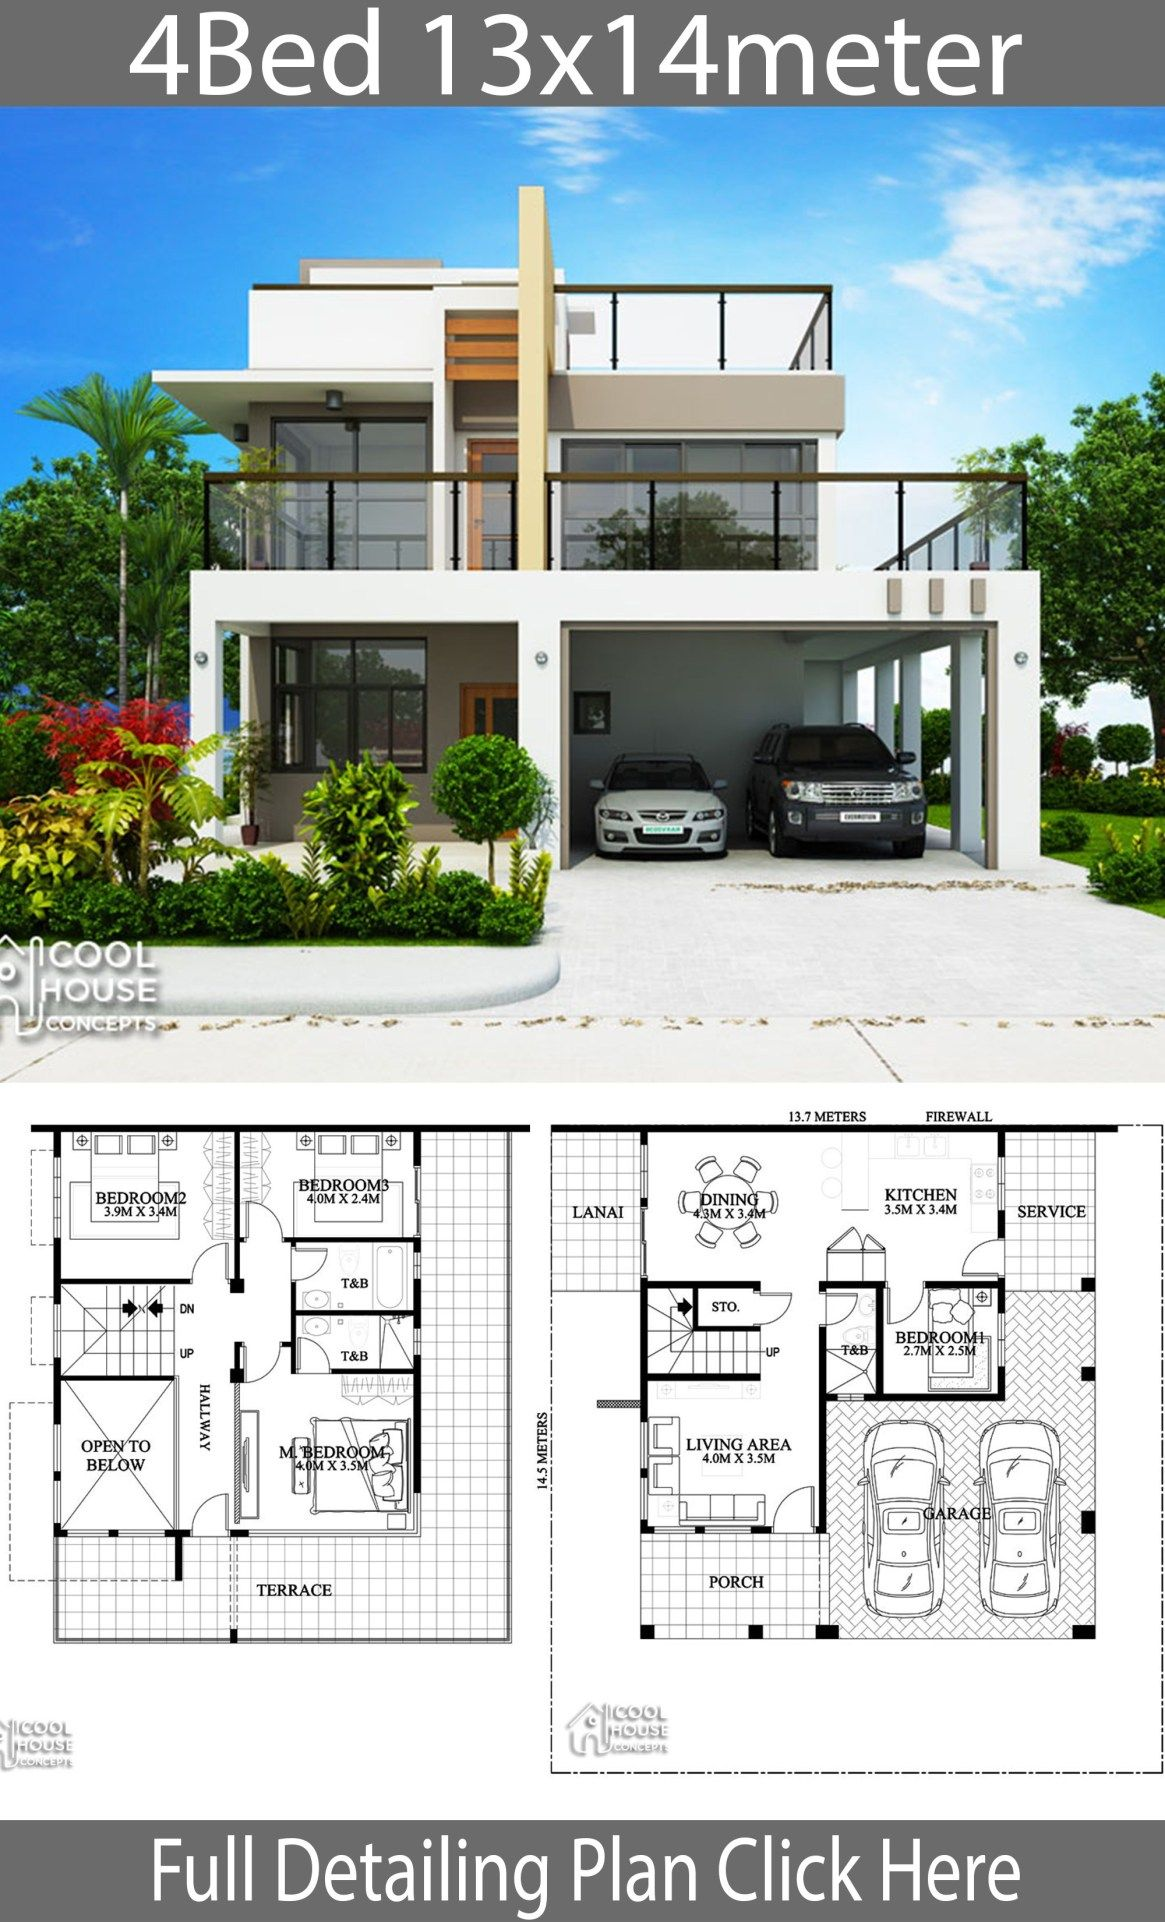 Home Design Plan 13x14m With 4 Bedrooms Home Design With Plansearch Duplex House Design House Layout Plans Bungalow House Design